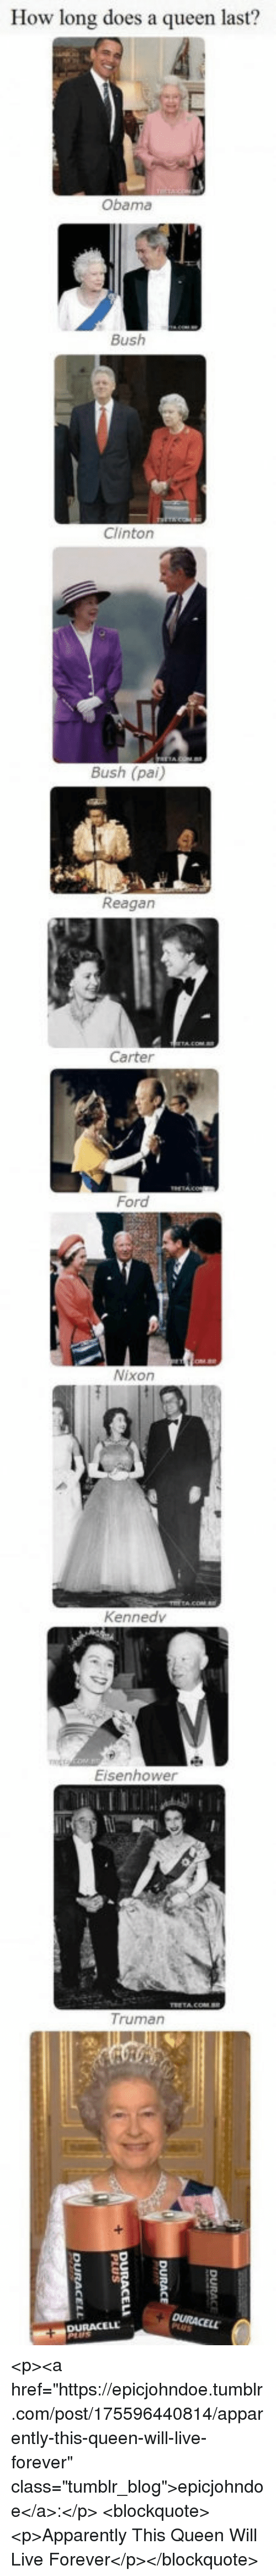 """Apparently, Obama, and Tumblr: How long does a queen last?  Obama  Bush  Clinton  Bush (pai)  Reagan  Carter  Ford  Nixon  Kennedv  Eisenhower  Truman <p><a href=""""https://epicjohndoe.tumblr.com/post/175596440814/apparently-this-queen-will-live-forever"""" class=""""tumblr_blog"""">epicjohndoe</a>:</p>  <blockquote><p>Apparently This Queen Will Live Forever</p></blockquote>"""